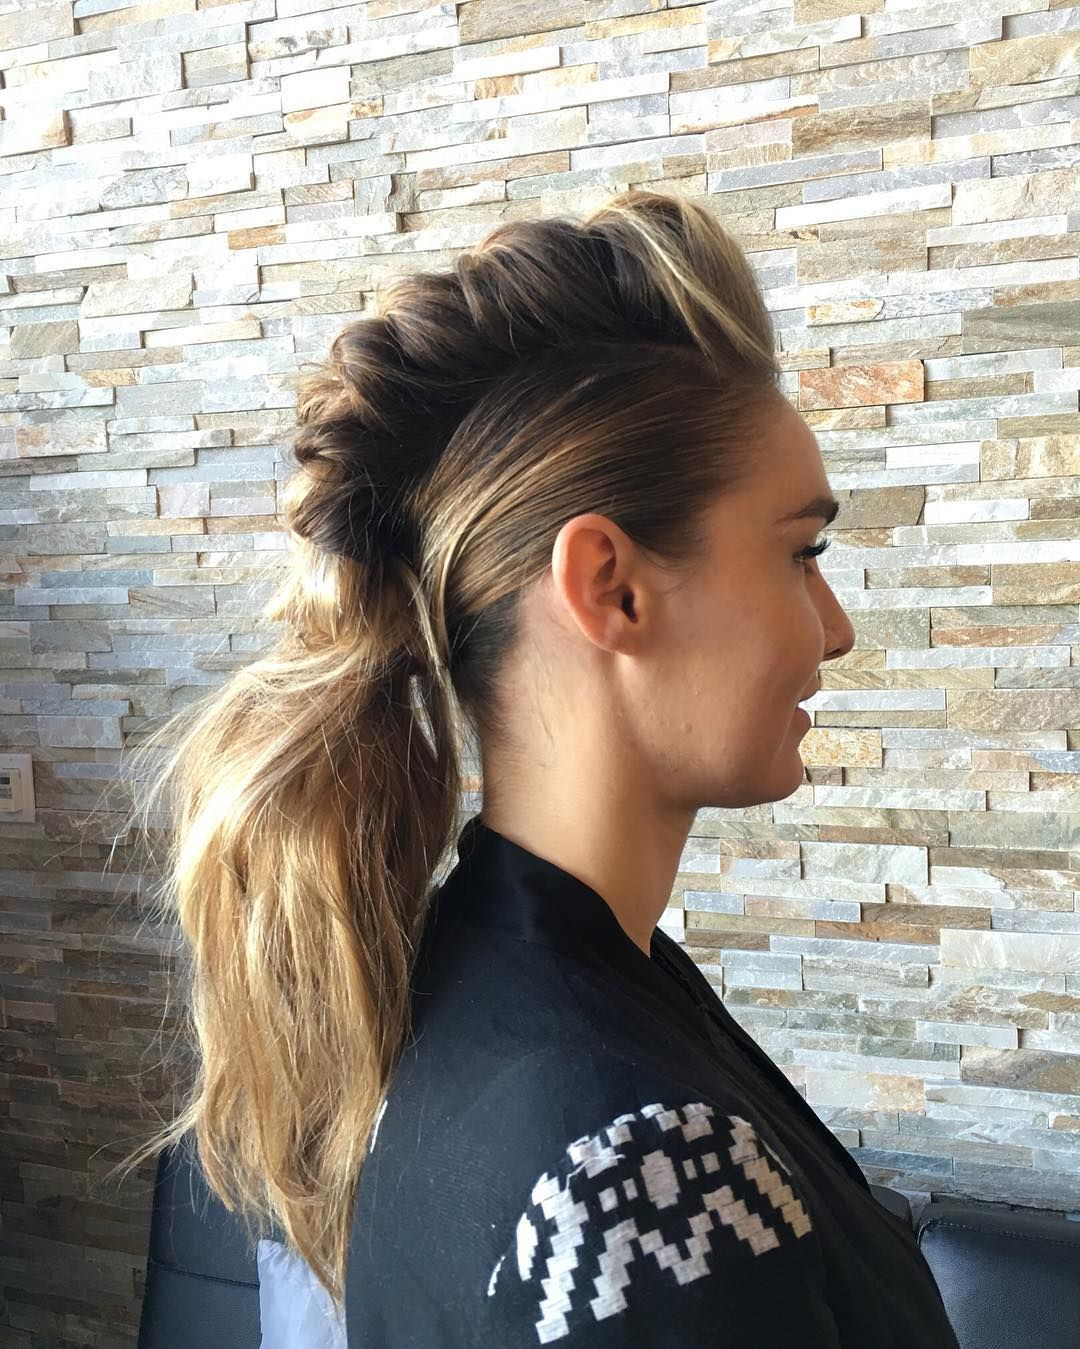 Discover the latest hairstyles for women and new haircut ideas for